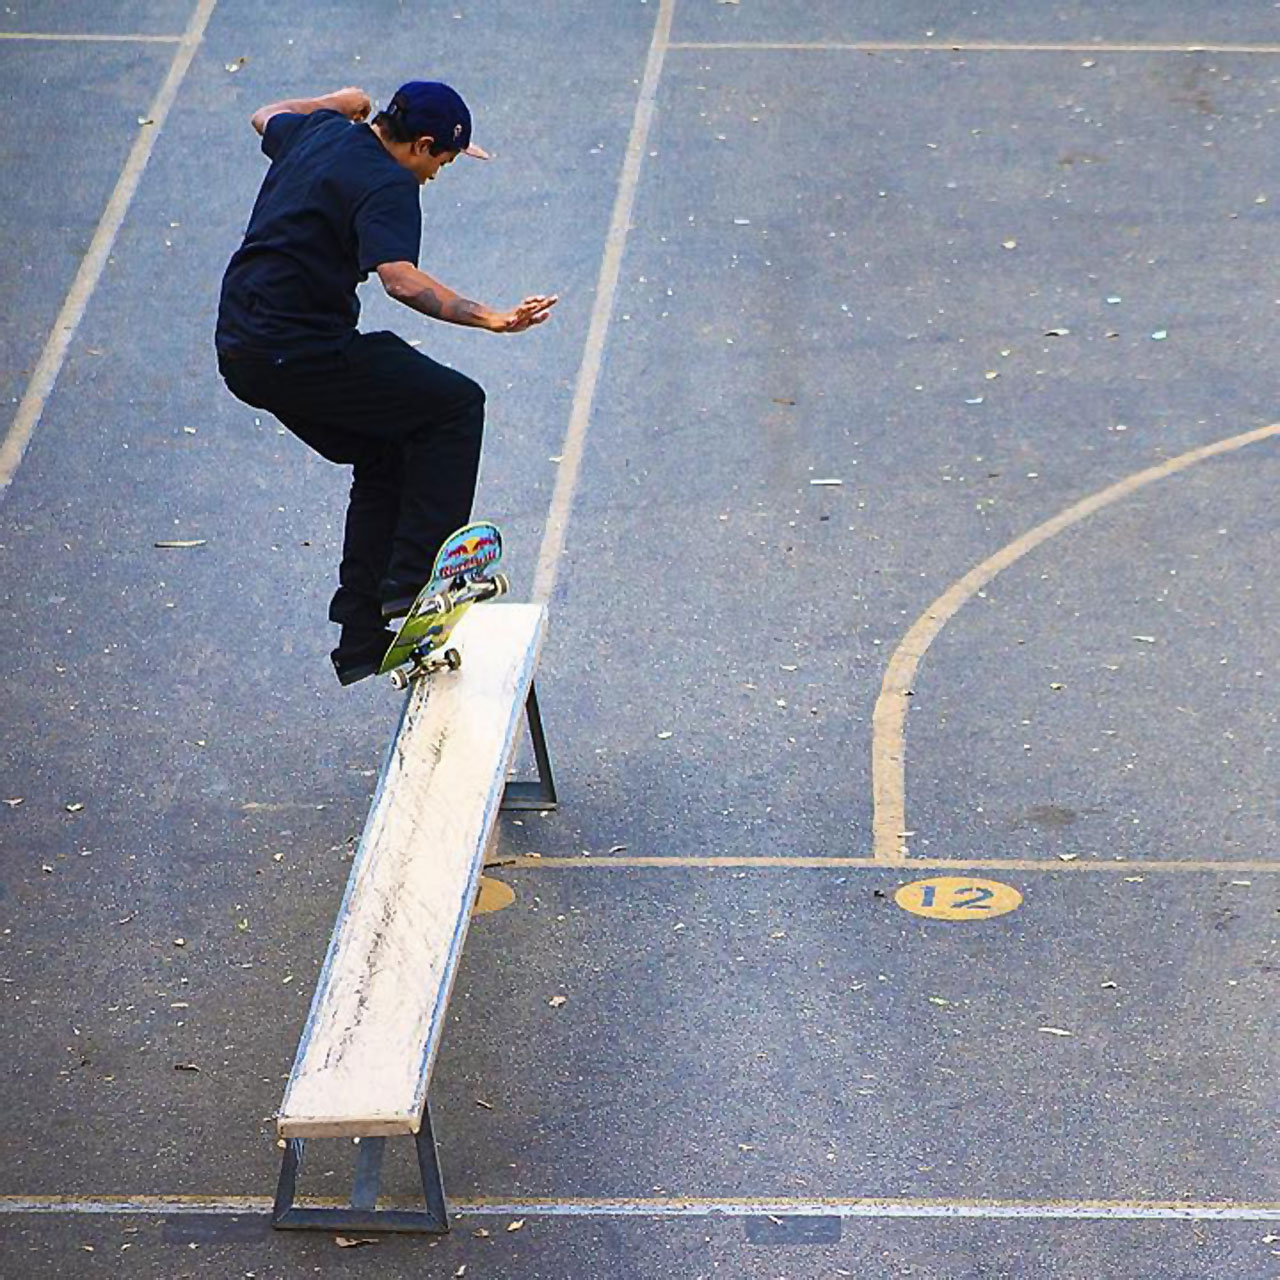 Felipe Gustavo's skateboarding trick shot by brother Paulo Macedo